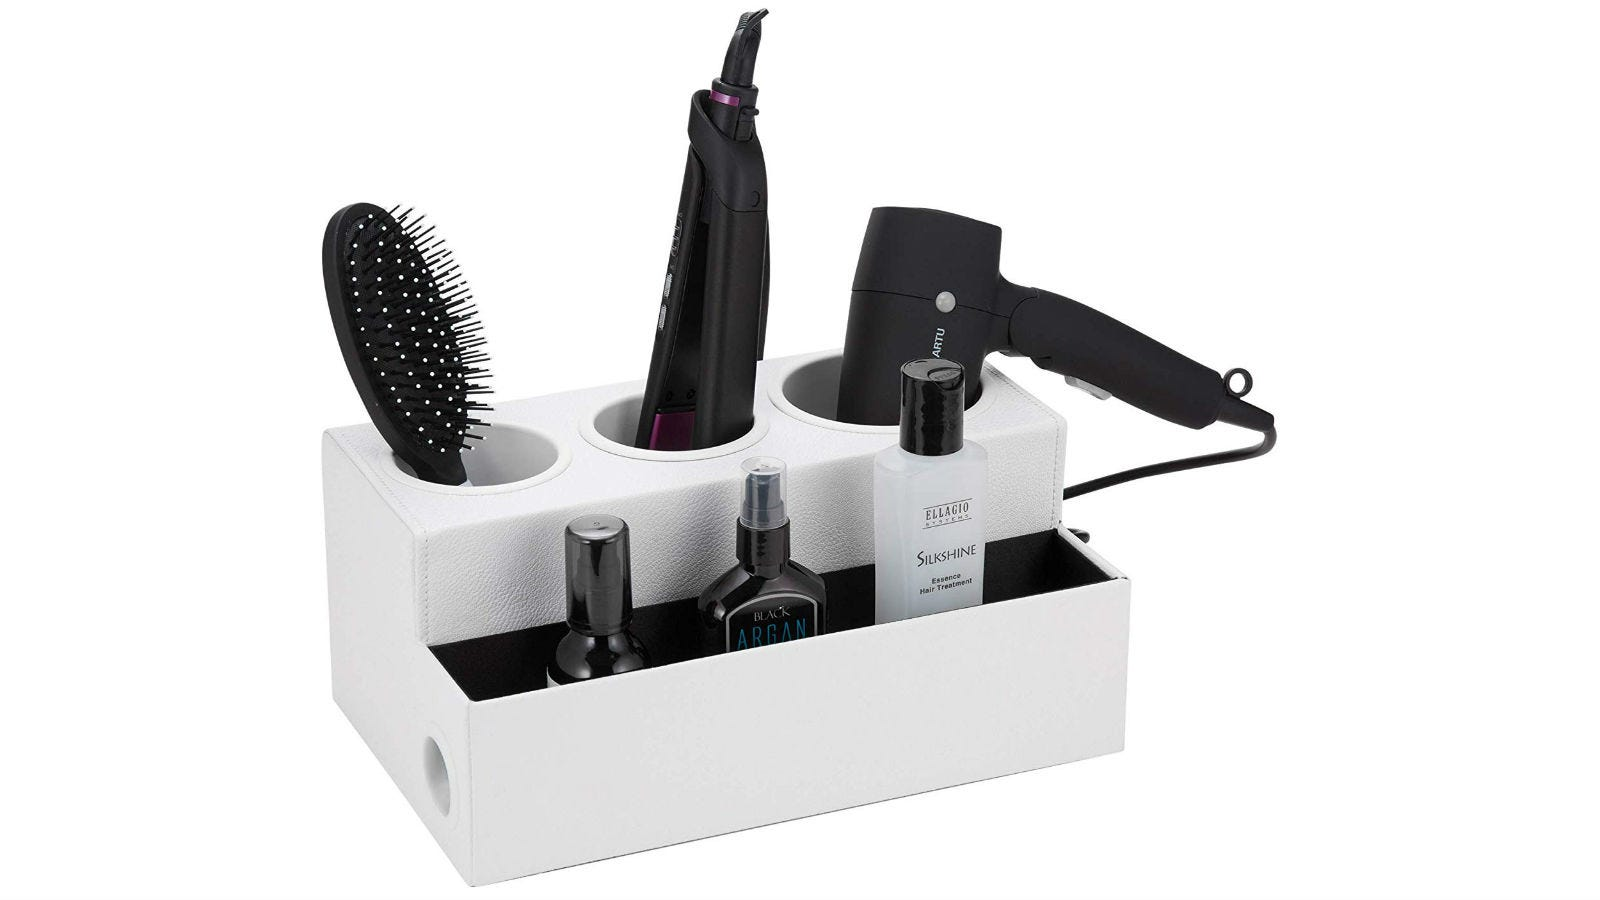 The JackCubeDesign Hair Dryer Organizer holding a hairbrush, clippers, a hair dryer, and three bottles of styling products.